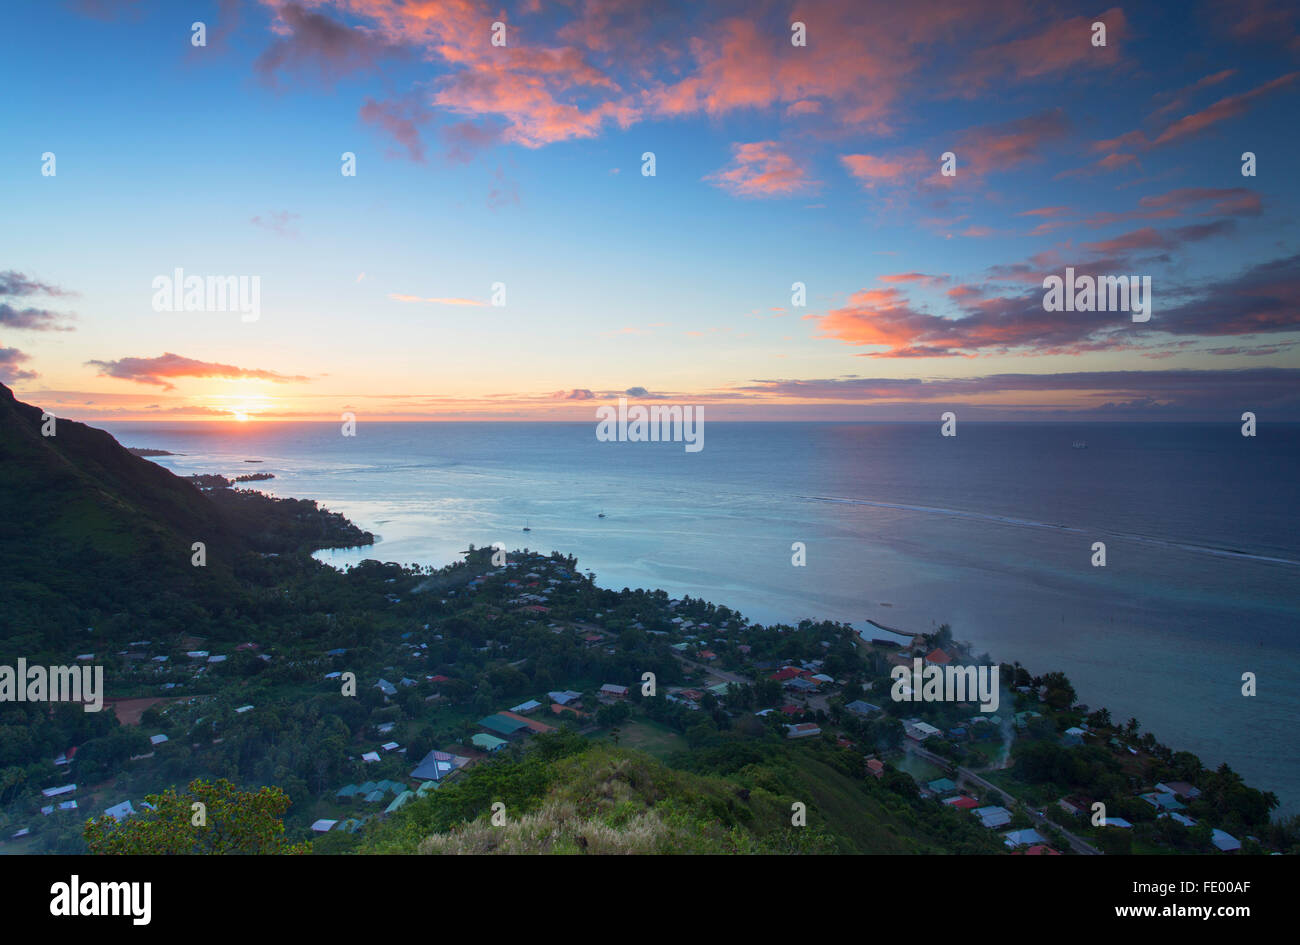 View of Papetoai at sunset, Mo'orea, Society Islands, French Polynesia - Stock Image